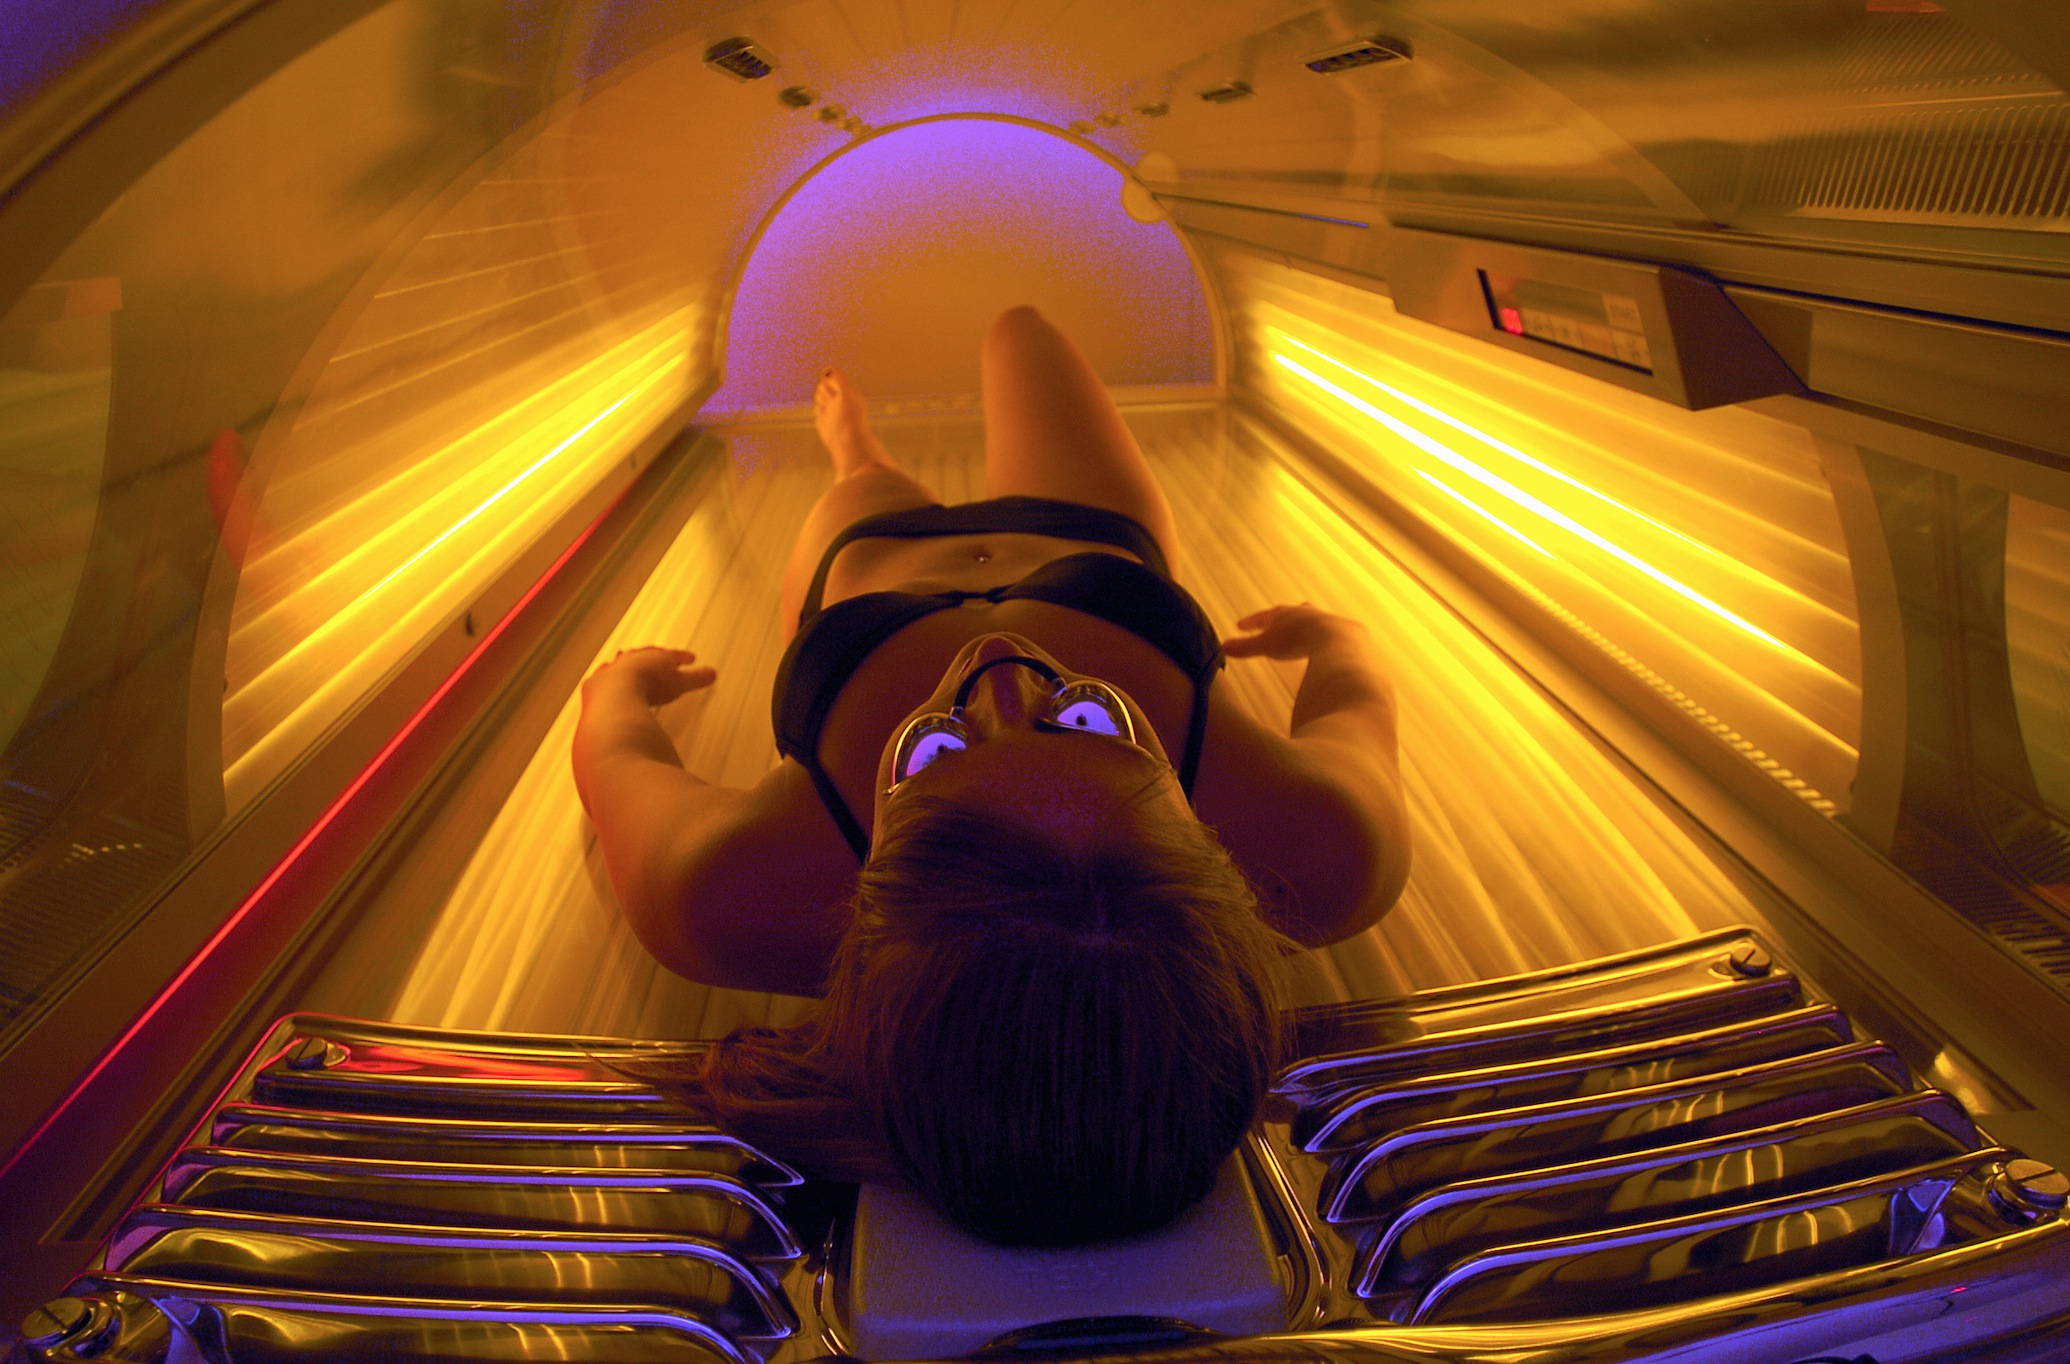 Surgeon General issues warning about tanning | USA NOW